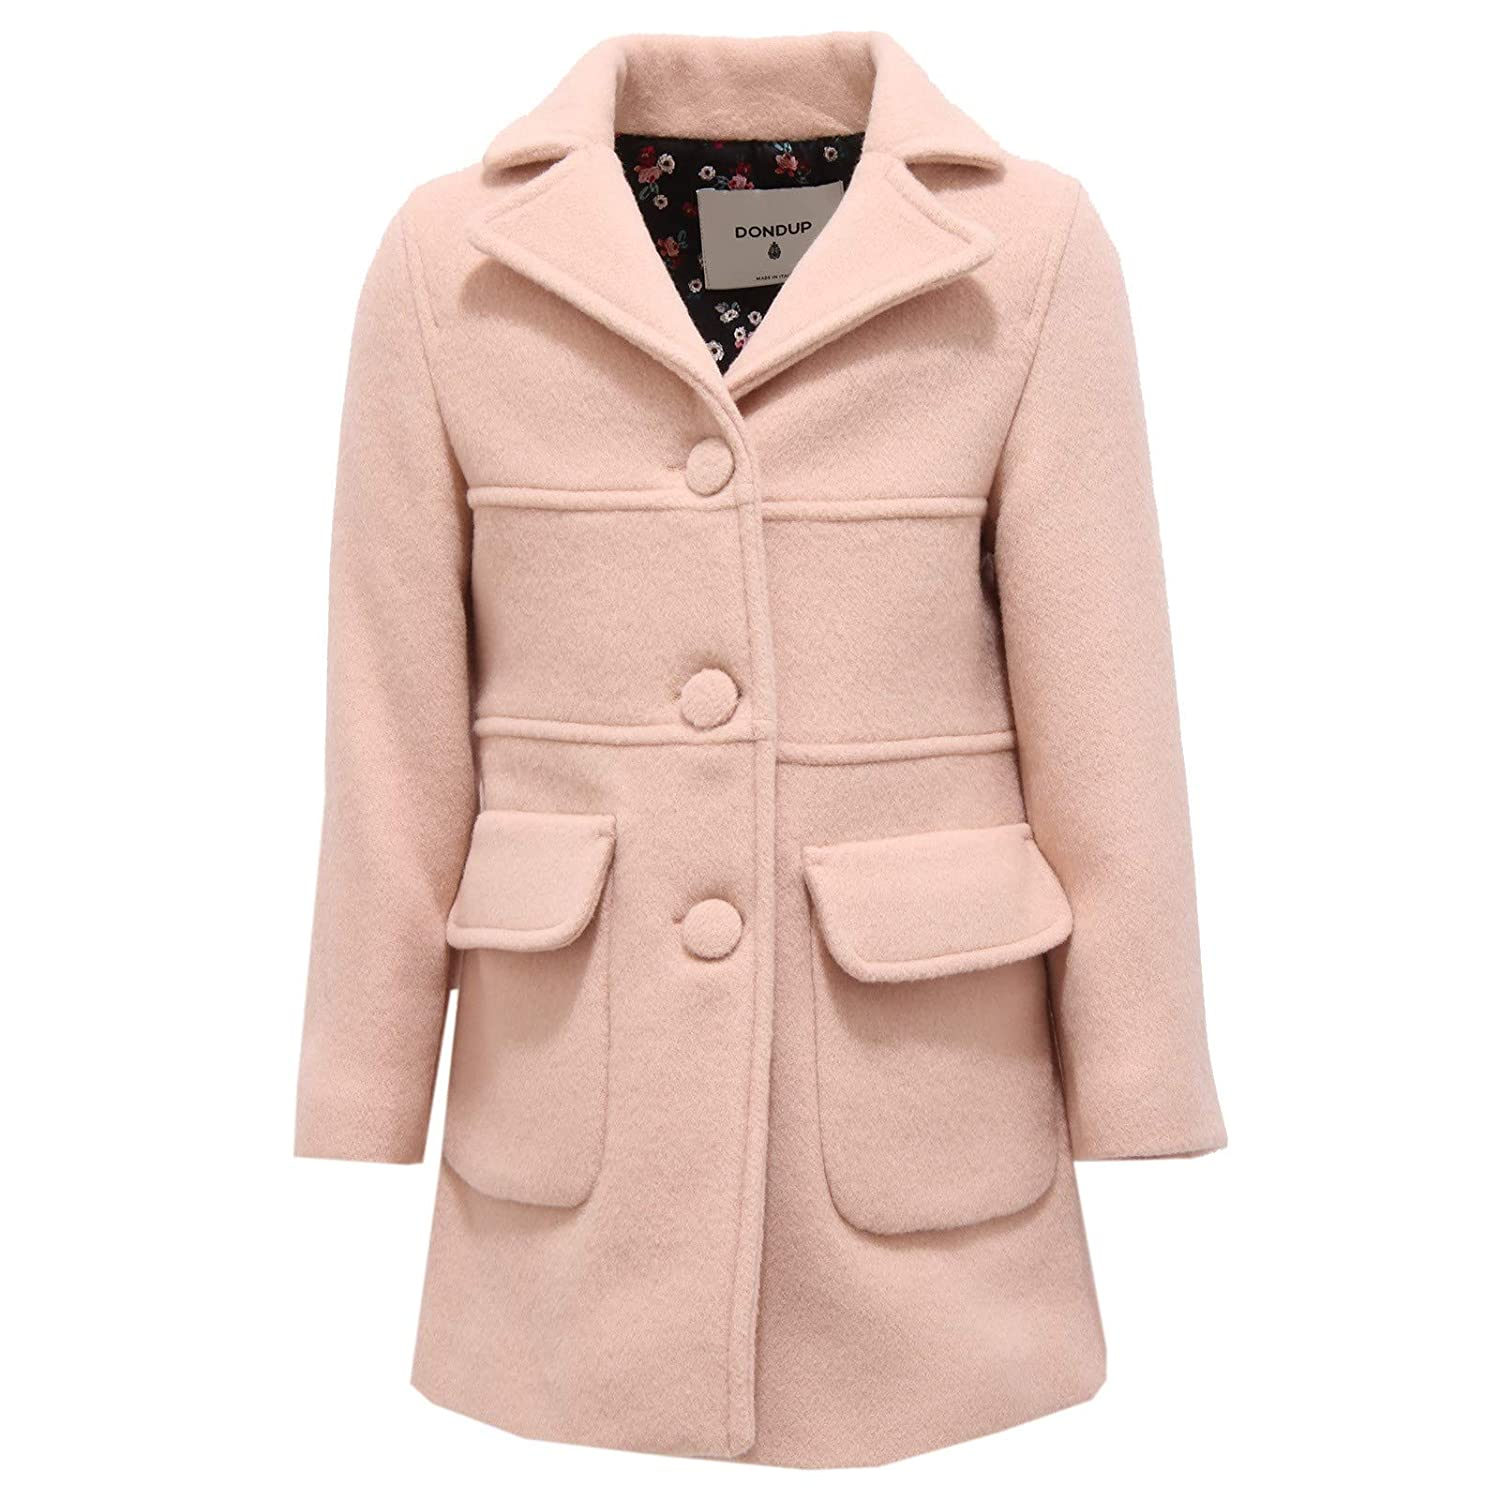 Rose M (8-10 Y) DONDUP 5987X Cappotto Bimba Girl rose Wool Cashmere veste